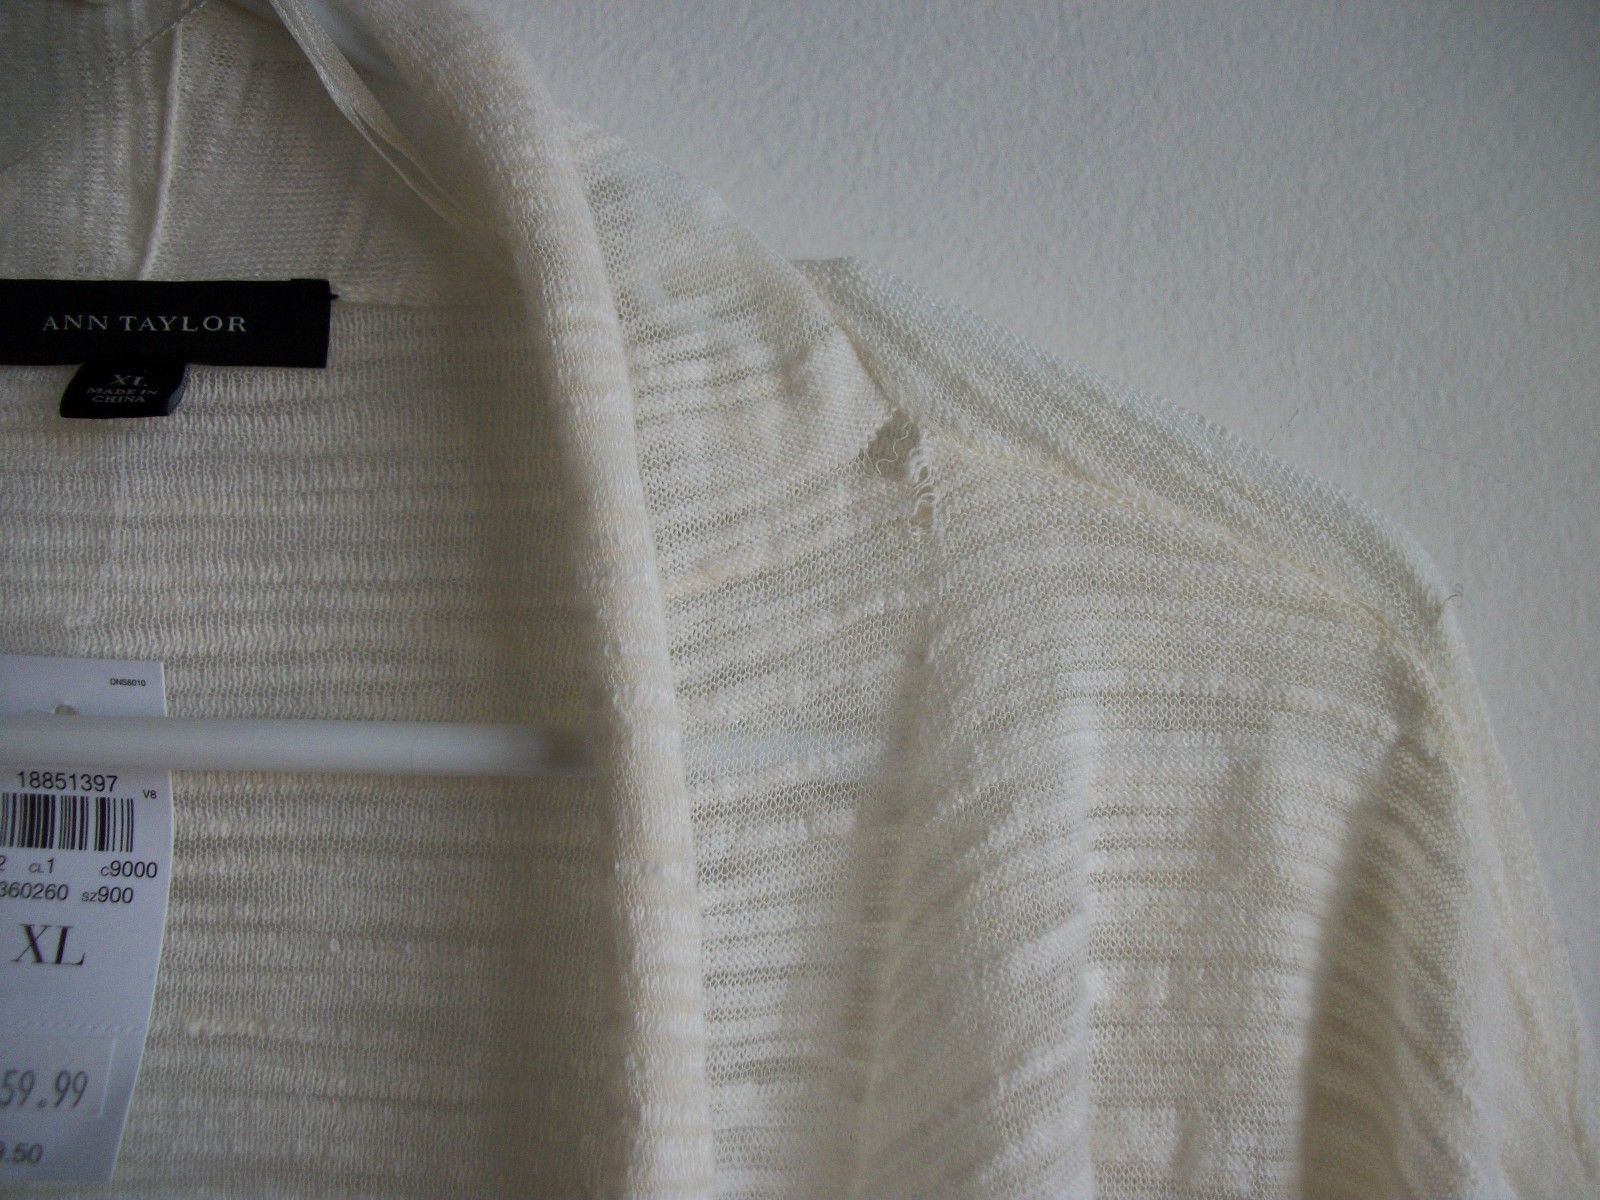 Ann Taylor Women's Off White Linen Blend Open Cardigan, size XL, New with defect